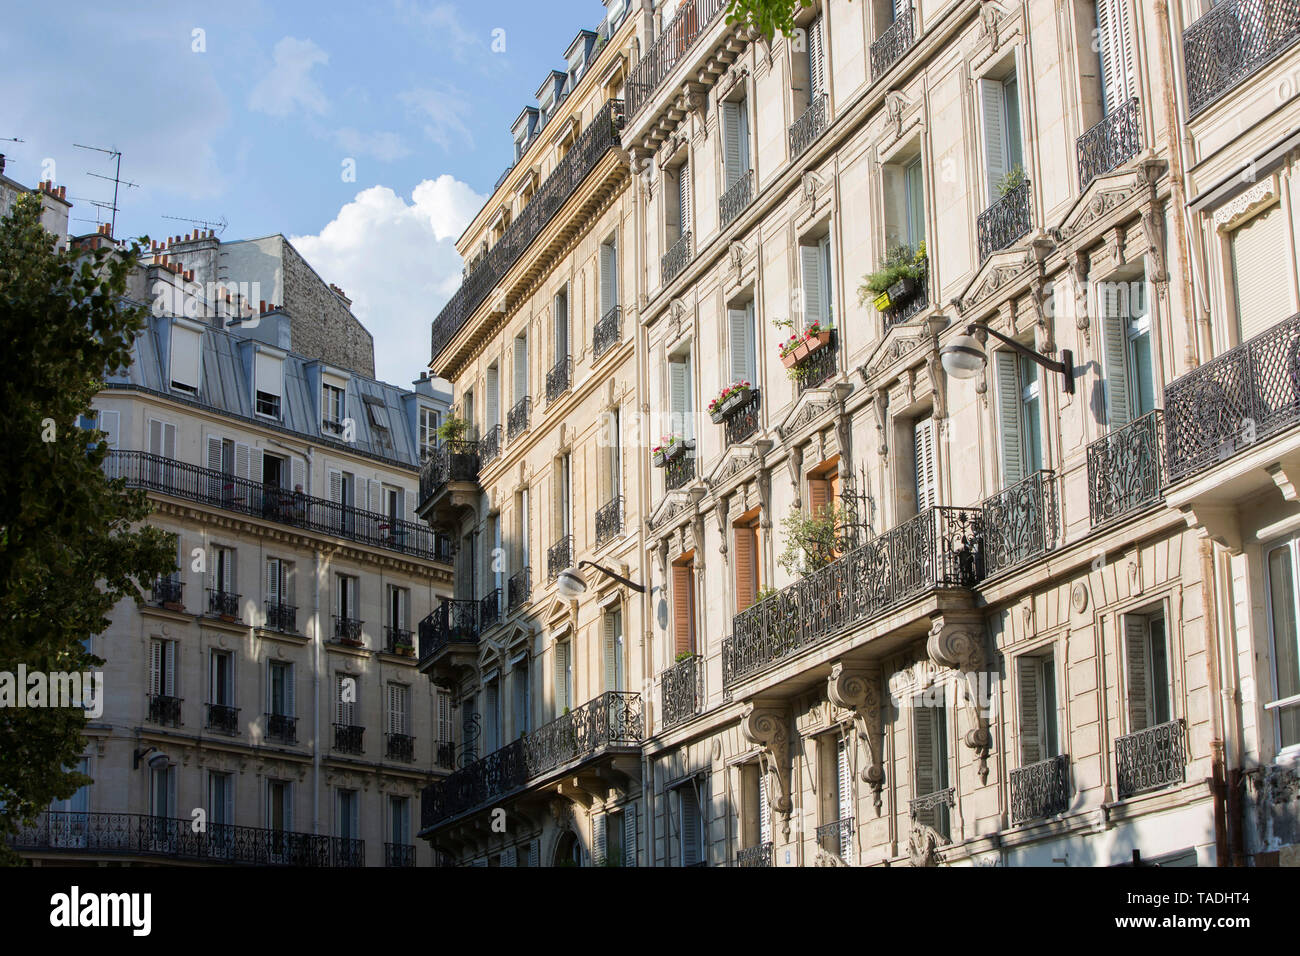 "Paris: street 'rue Pierre Semard"" street in the 9th arrondissement (district) *** Local Caption *** - Stock Image"